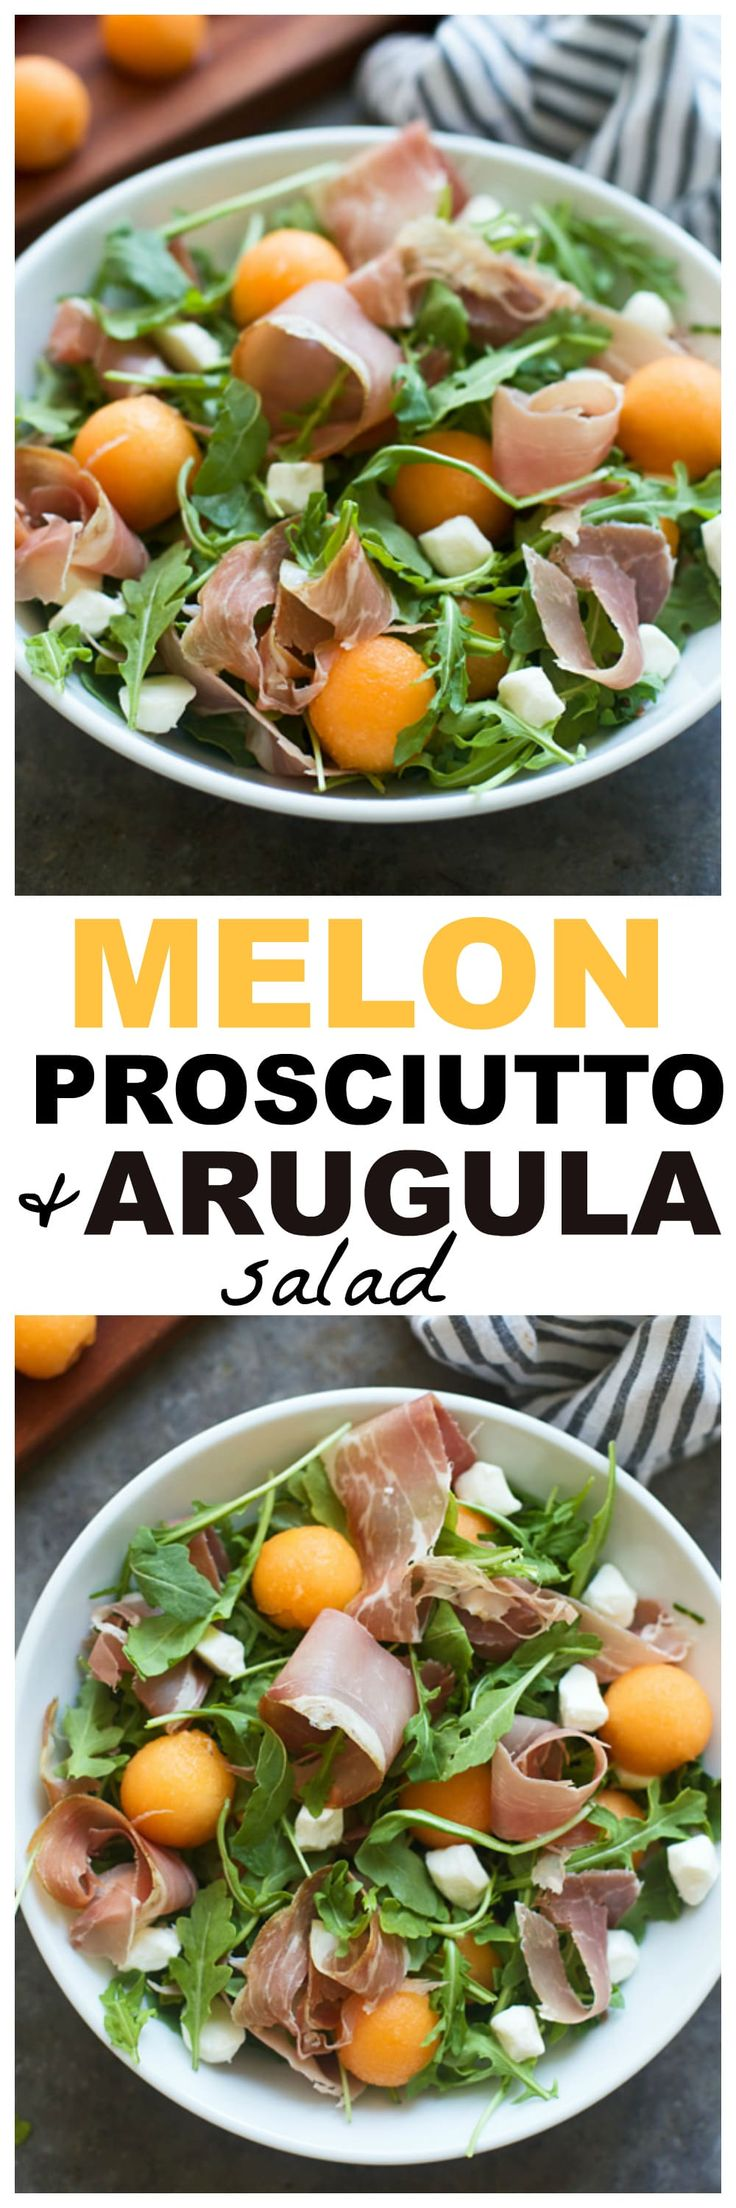 Melon, Prosciutto and Arugula Salad with Lemon Vinaigrette - An easy salad that's sure to impress!